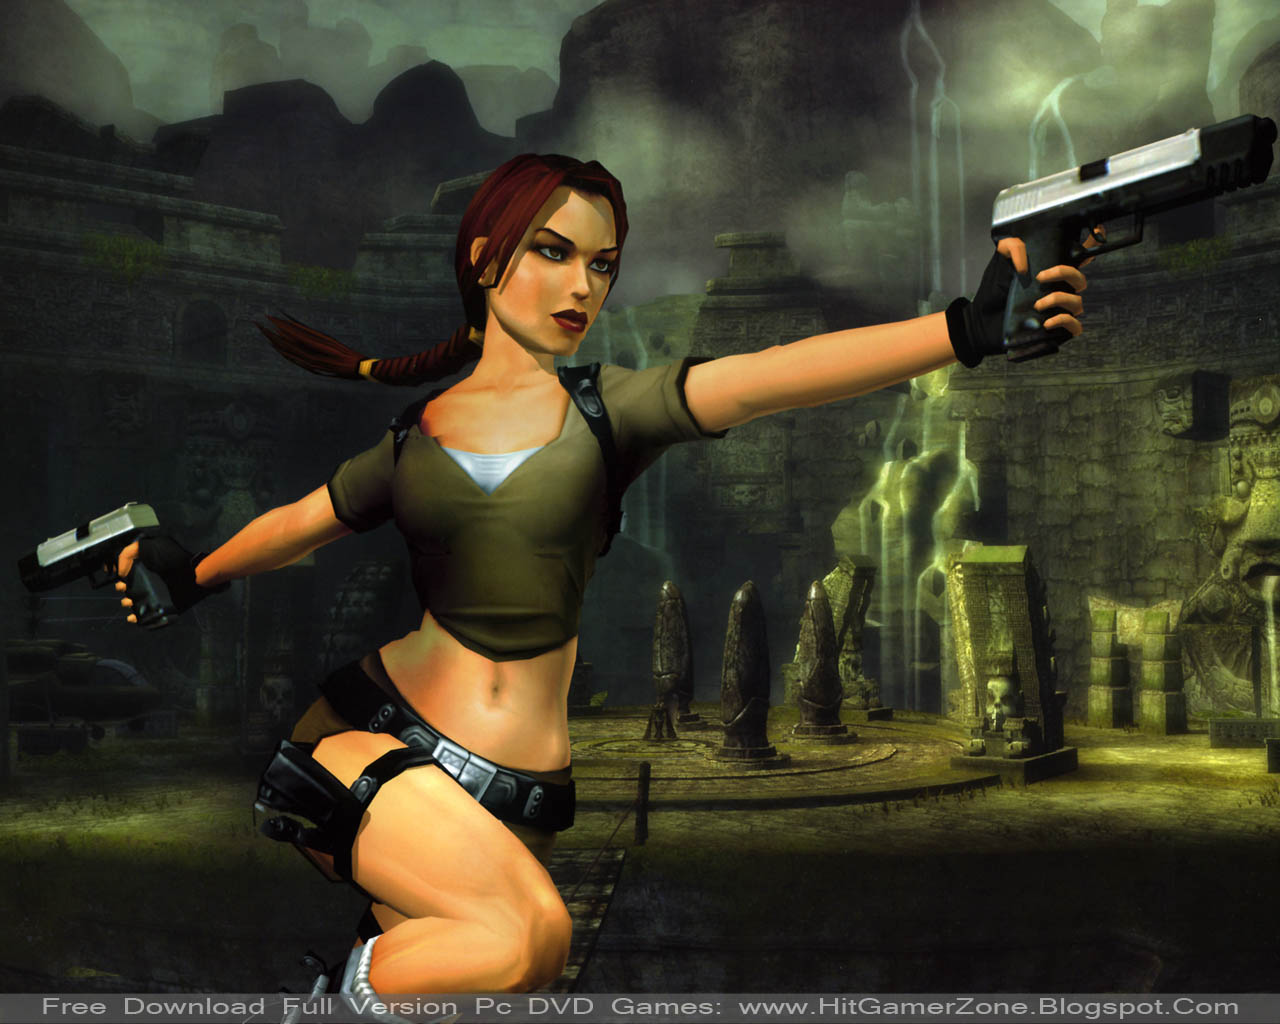 Tomb raider legend nude xbox anime picture